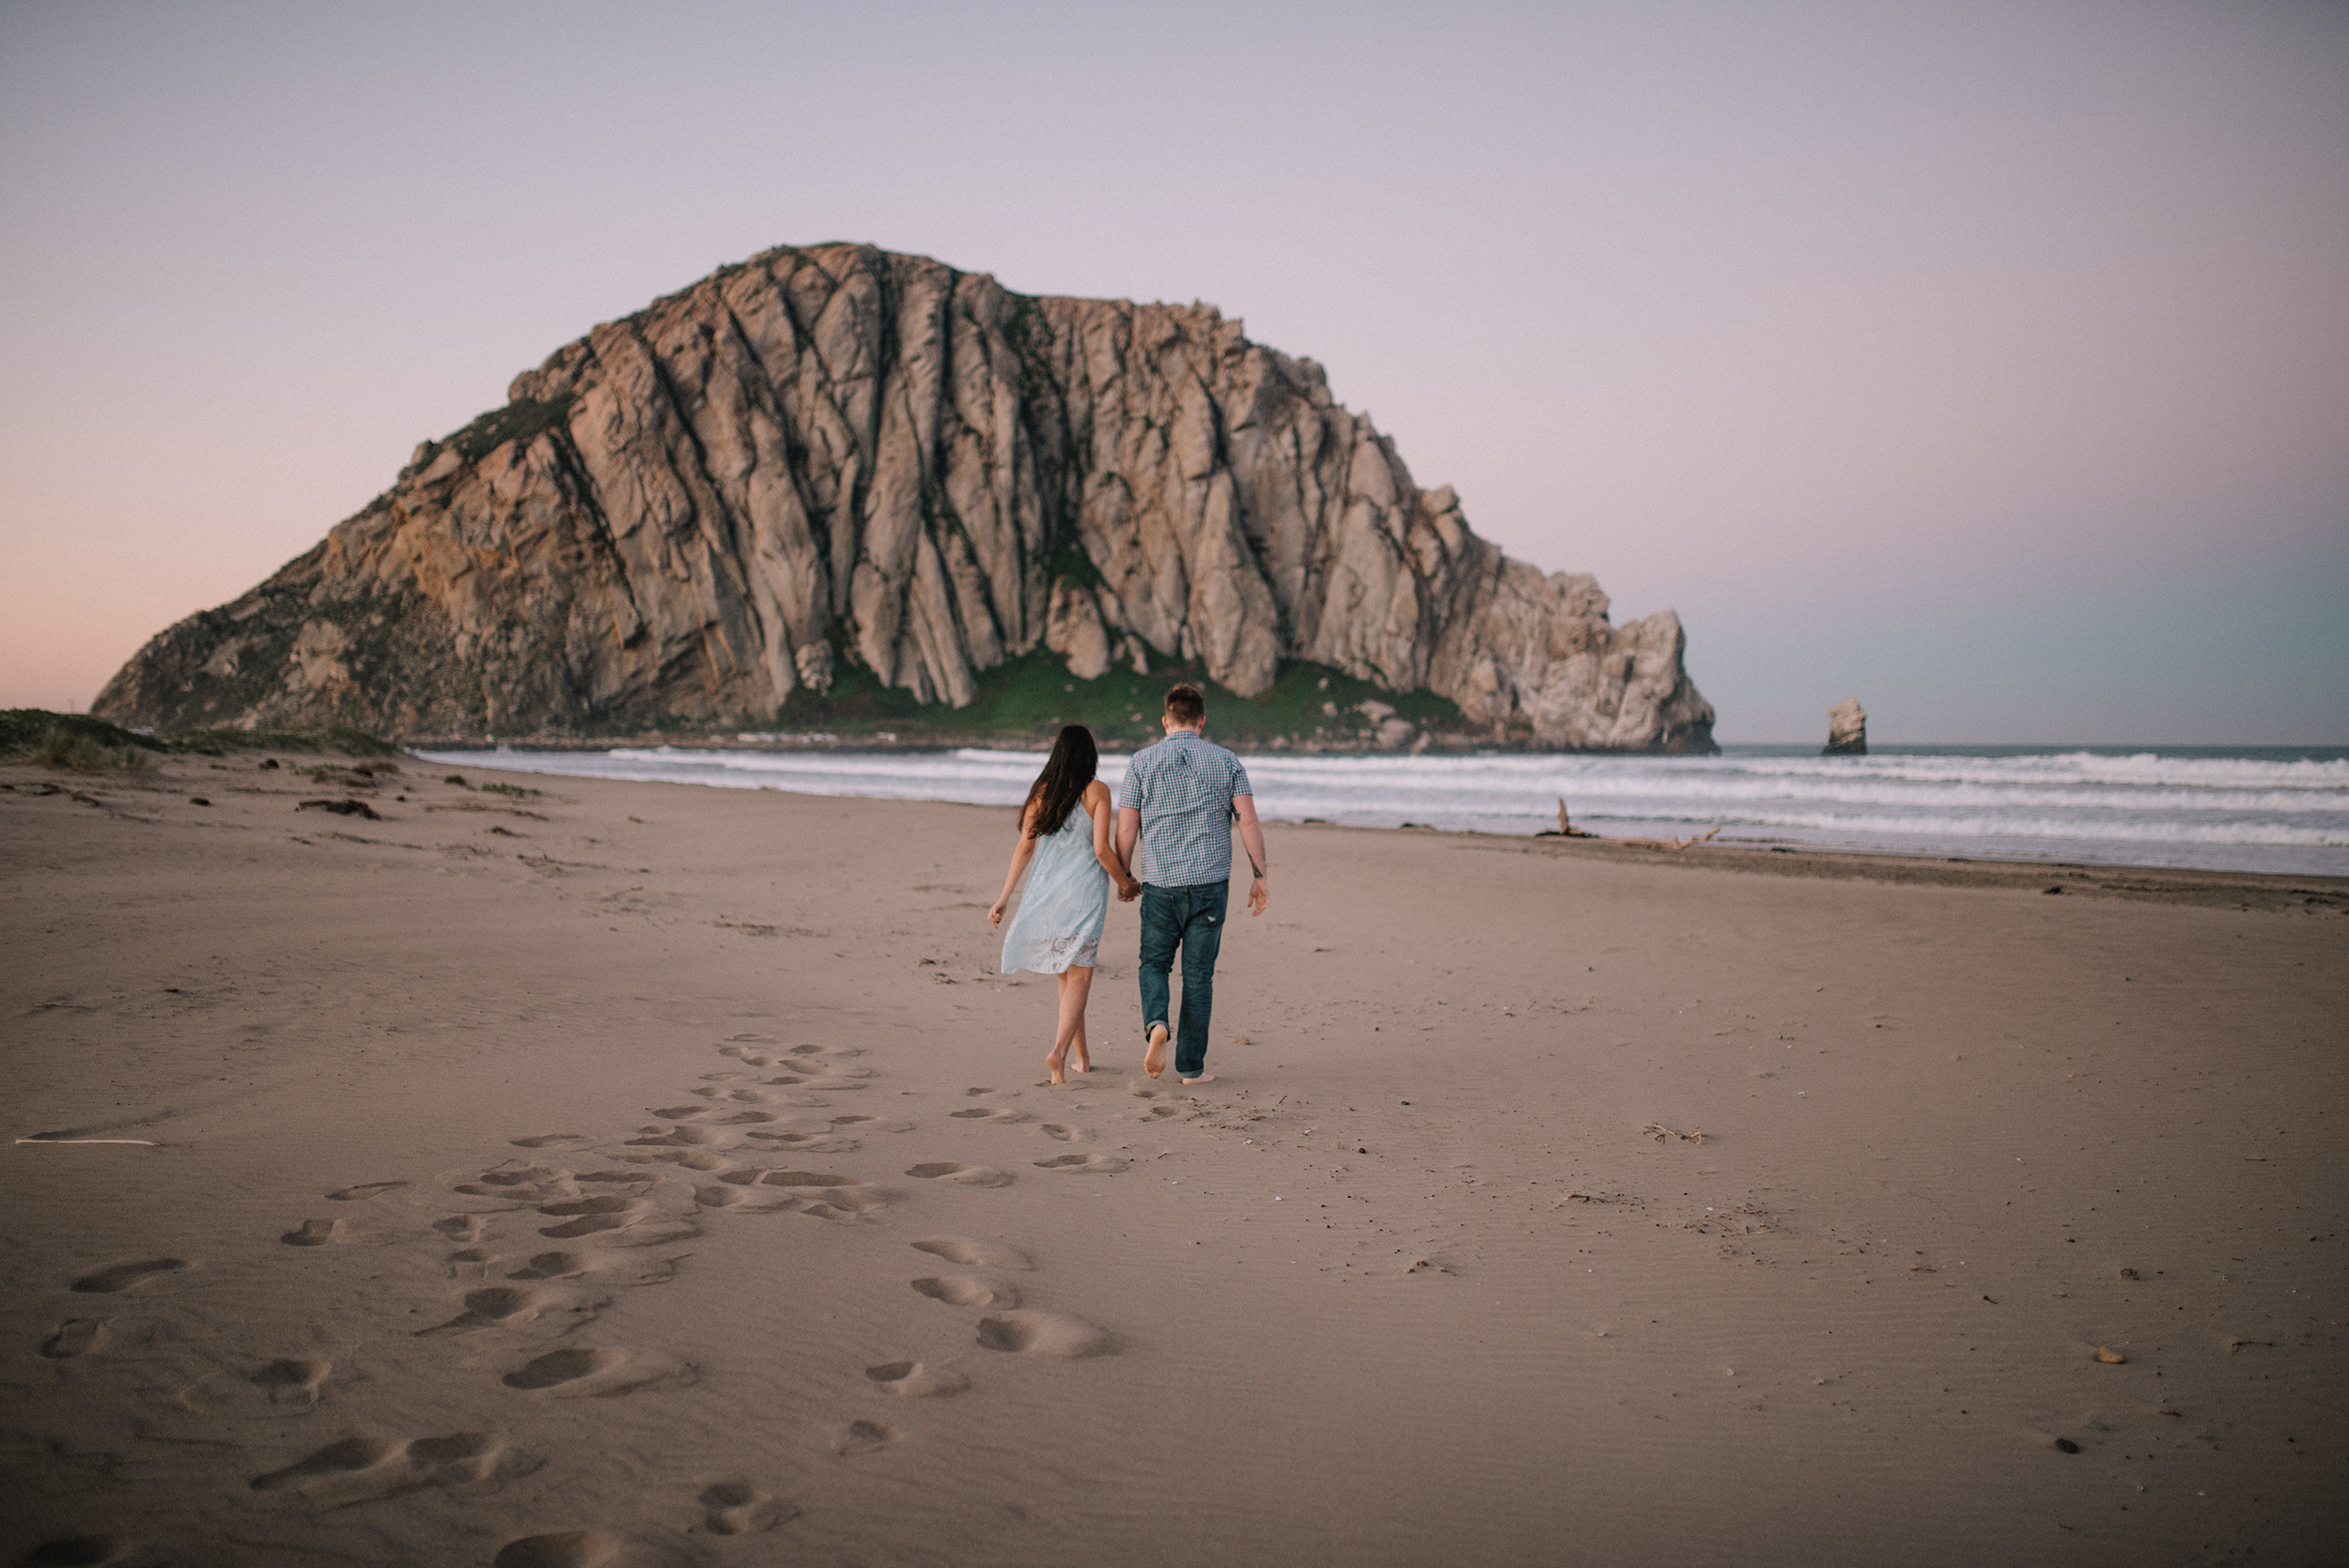 Colby-and-Jess-Adventure-Engagement-Photography-Morro-Bay-Montana-de-oro-California71.jpg